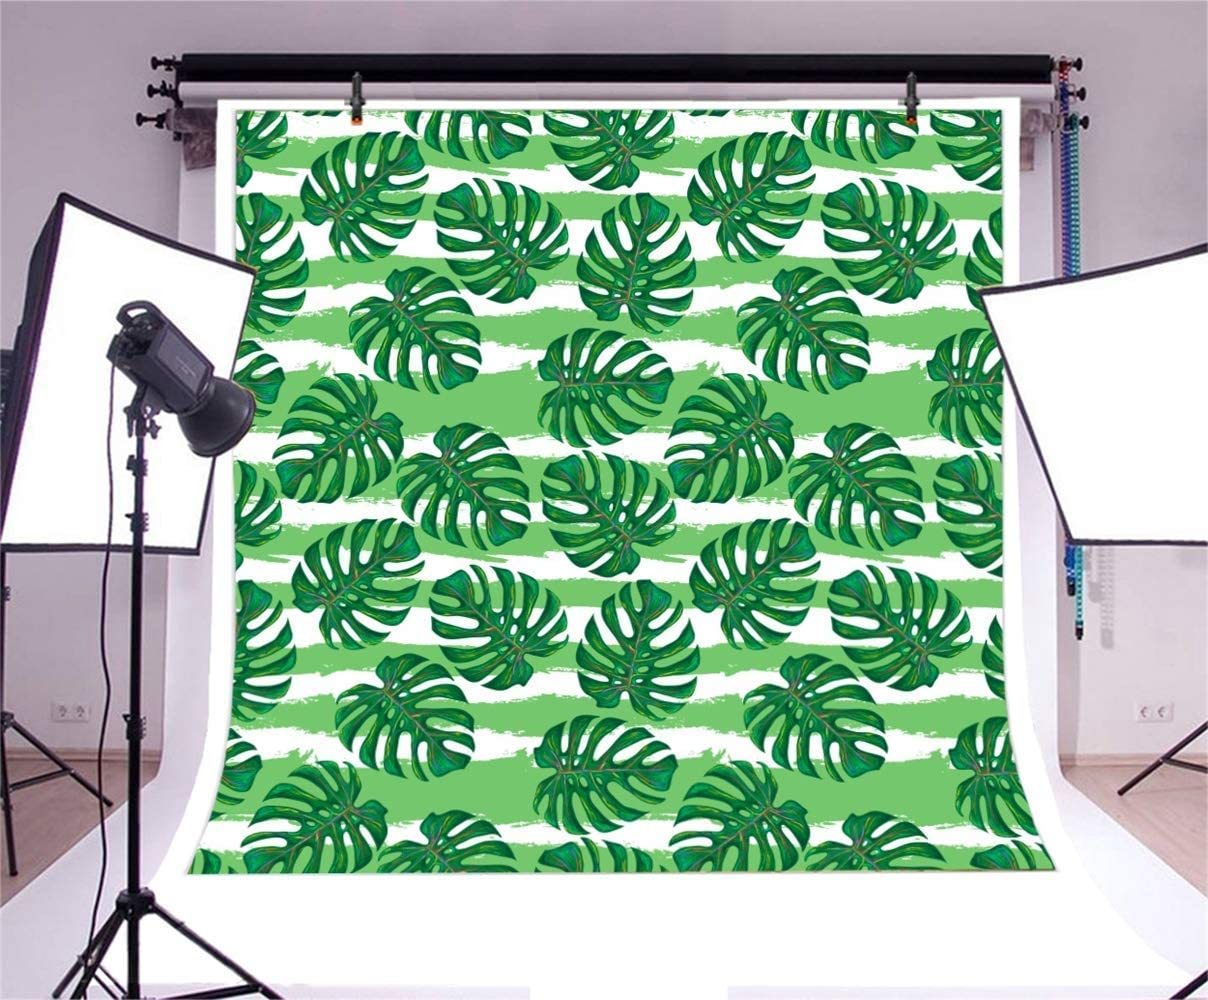 7x7ft Cartoon Tropical Leaves Illustration Green Striped Polyester Photography Background Summer Party Foliage Backdrop Portrait Shoot Birthday Banner Wallpaper YouTube Background Studio Props